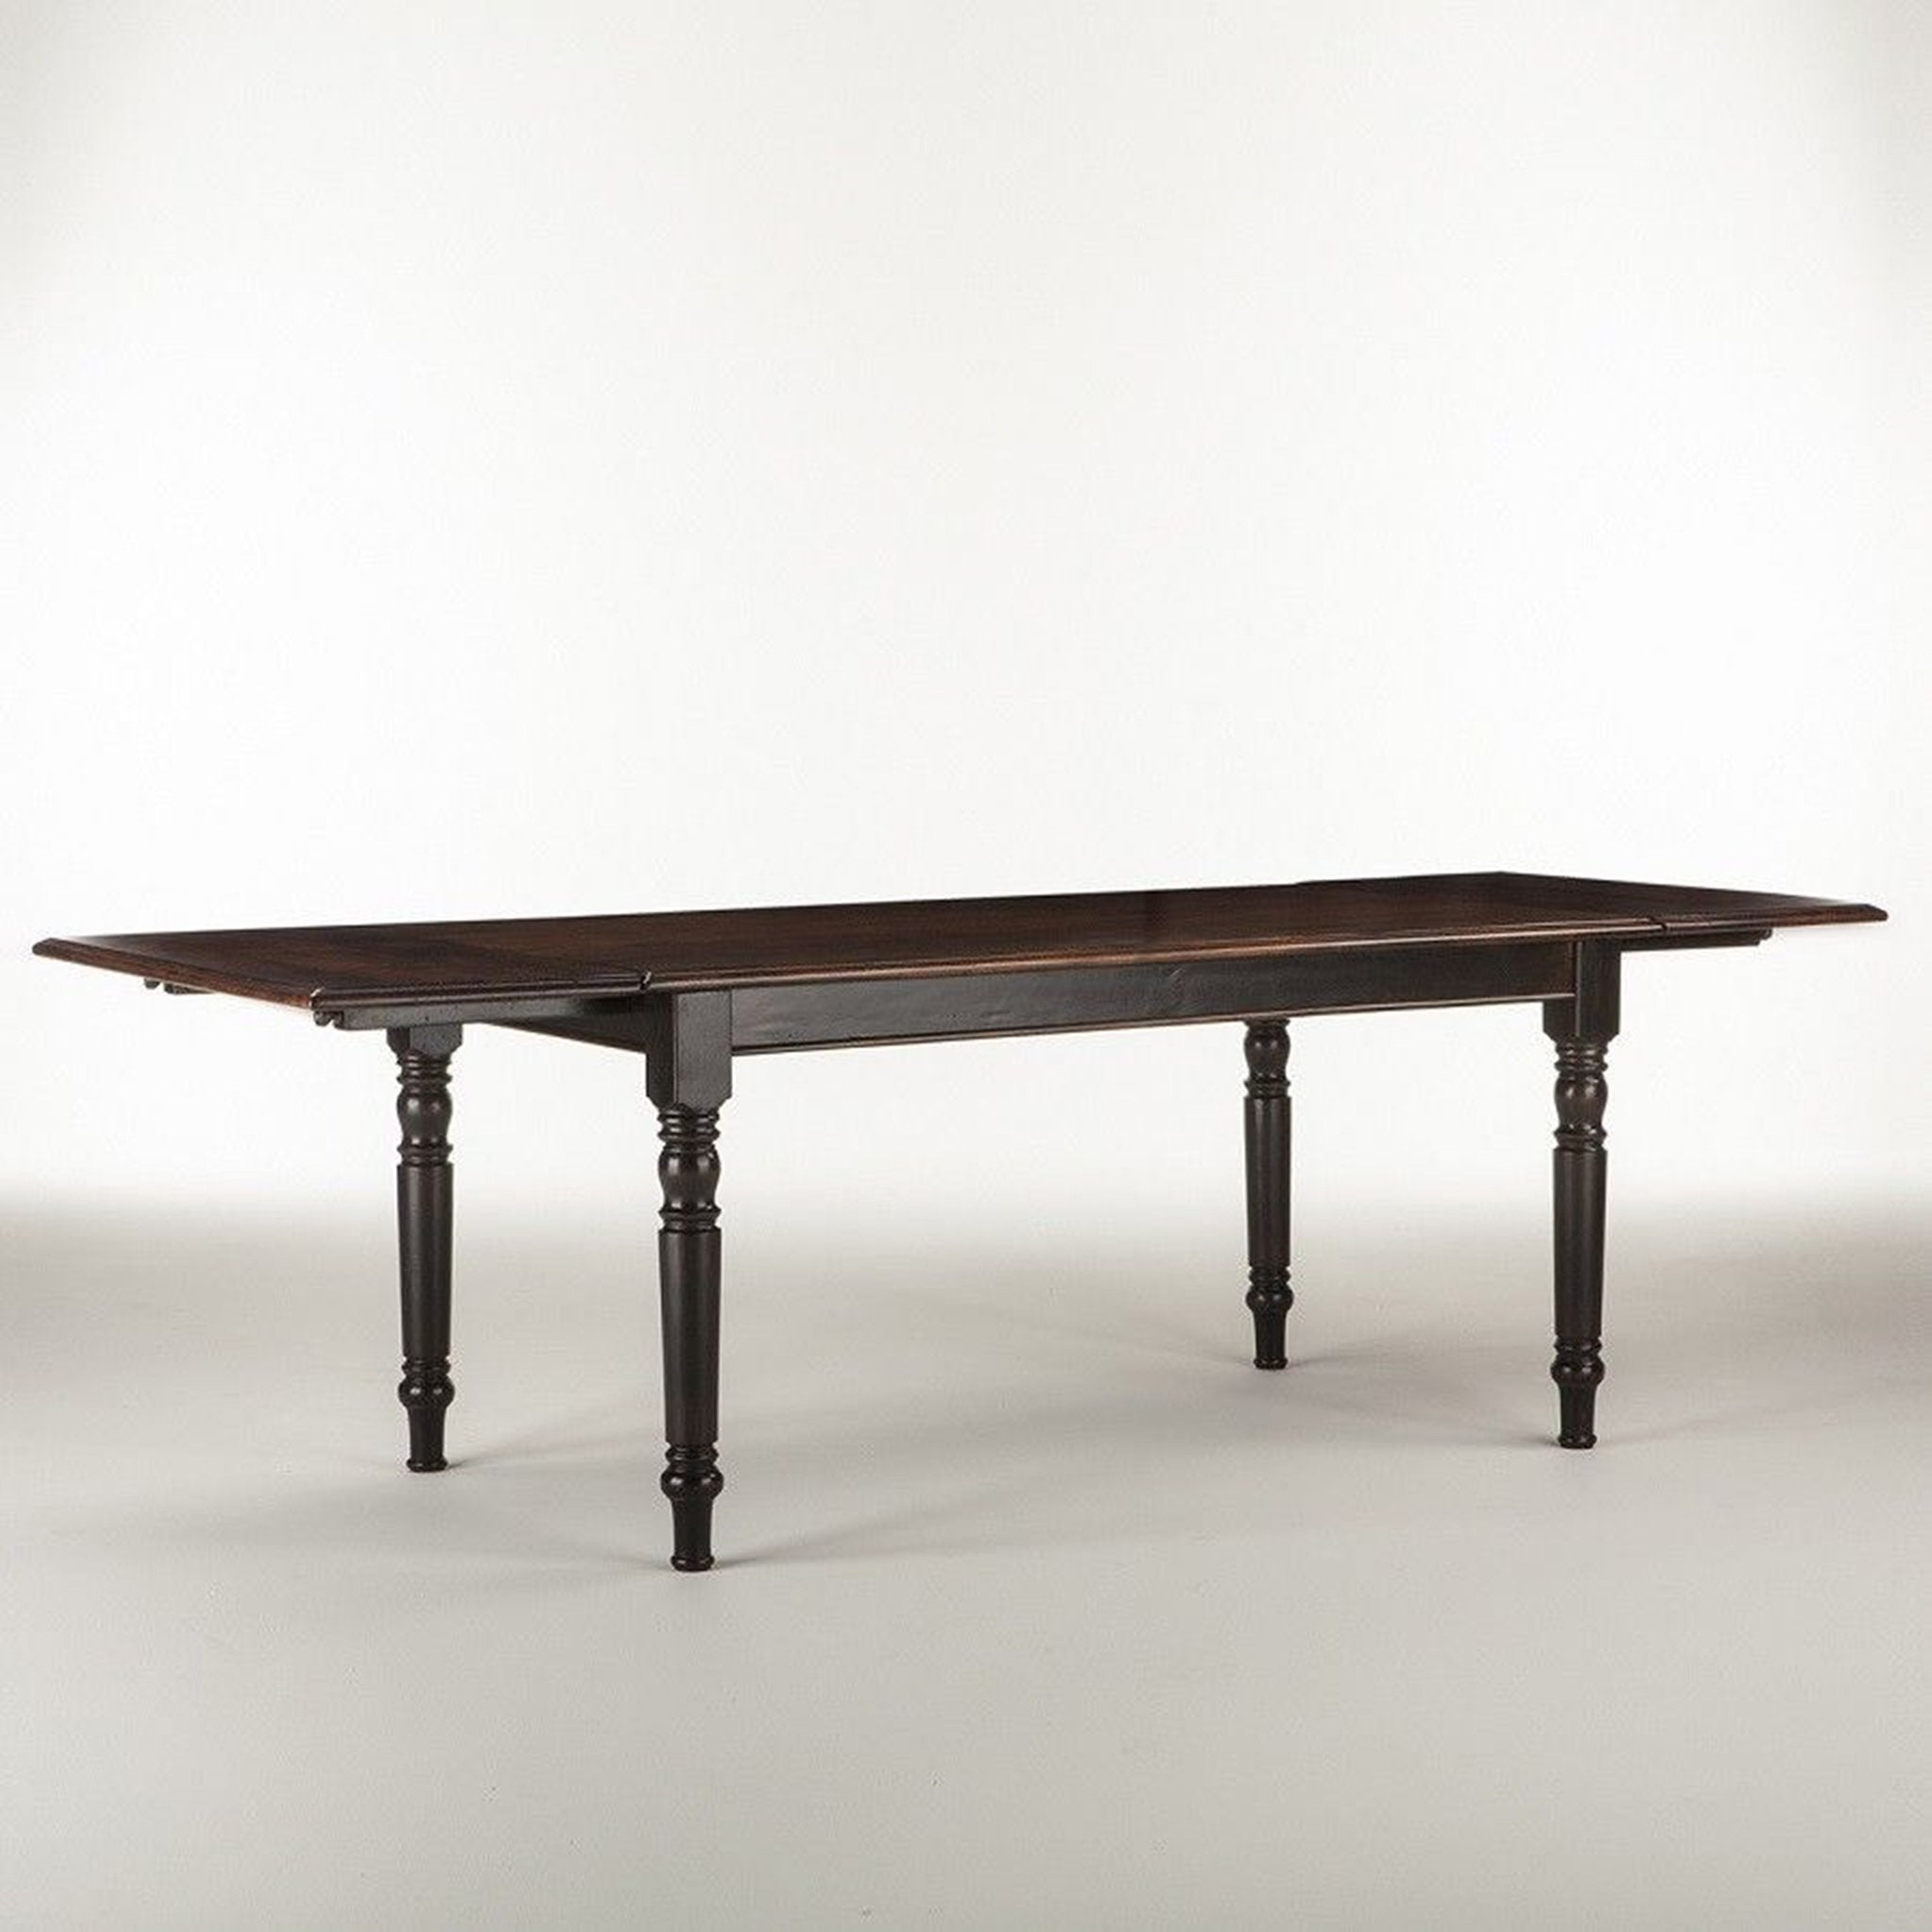 Farmhouse Leg Dining Table Black and Stain Extension Dining Table